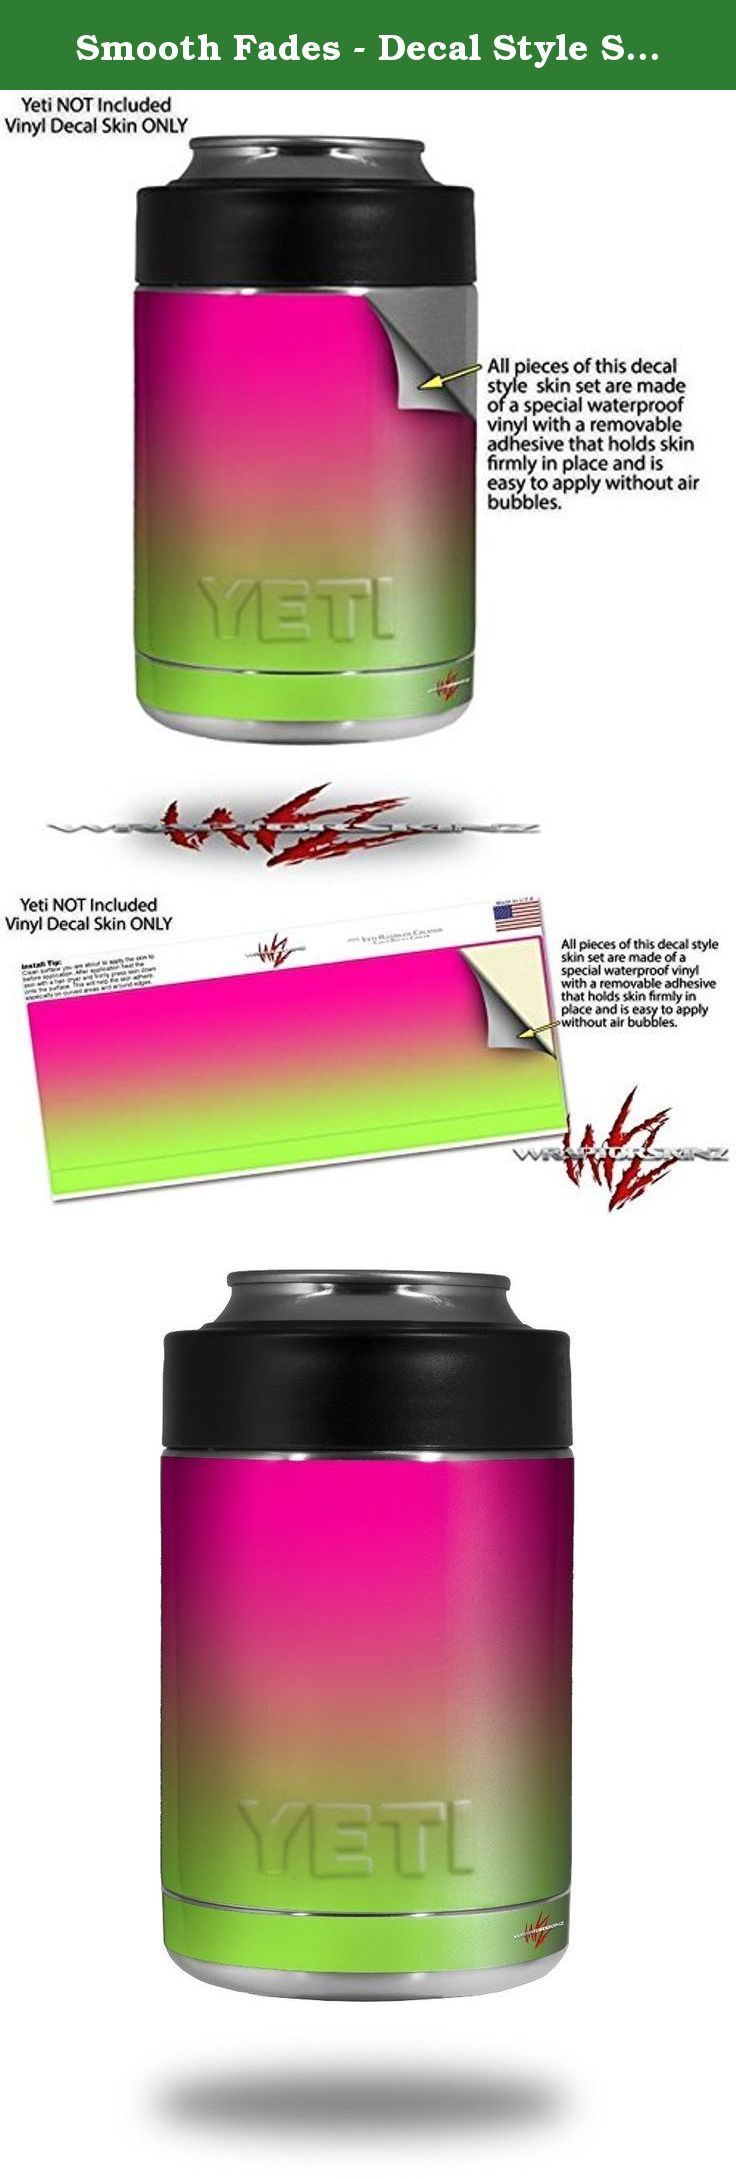 Smooth Fades - Decal Style Skin Wrap fits Yeti Rambler Colster and RTIC Can (COOLER NOT INCLUDED). WraptoSkinzTM skin wraps for Yeti Ramblers are printed using superb photo quality designs and vibrant colors printed with special fade resistant inks that last even in direct sun for years. WraptorSkinz are a composite of two layers of commercial grade materials. The bottom layer is a soft, flexible vinyl with a special removable adhesive that is easily positioned, applied without air…